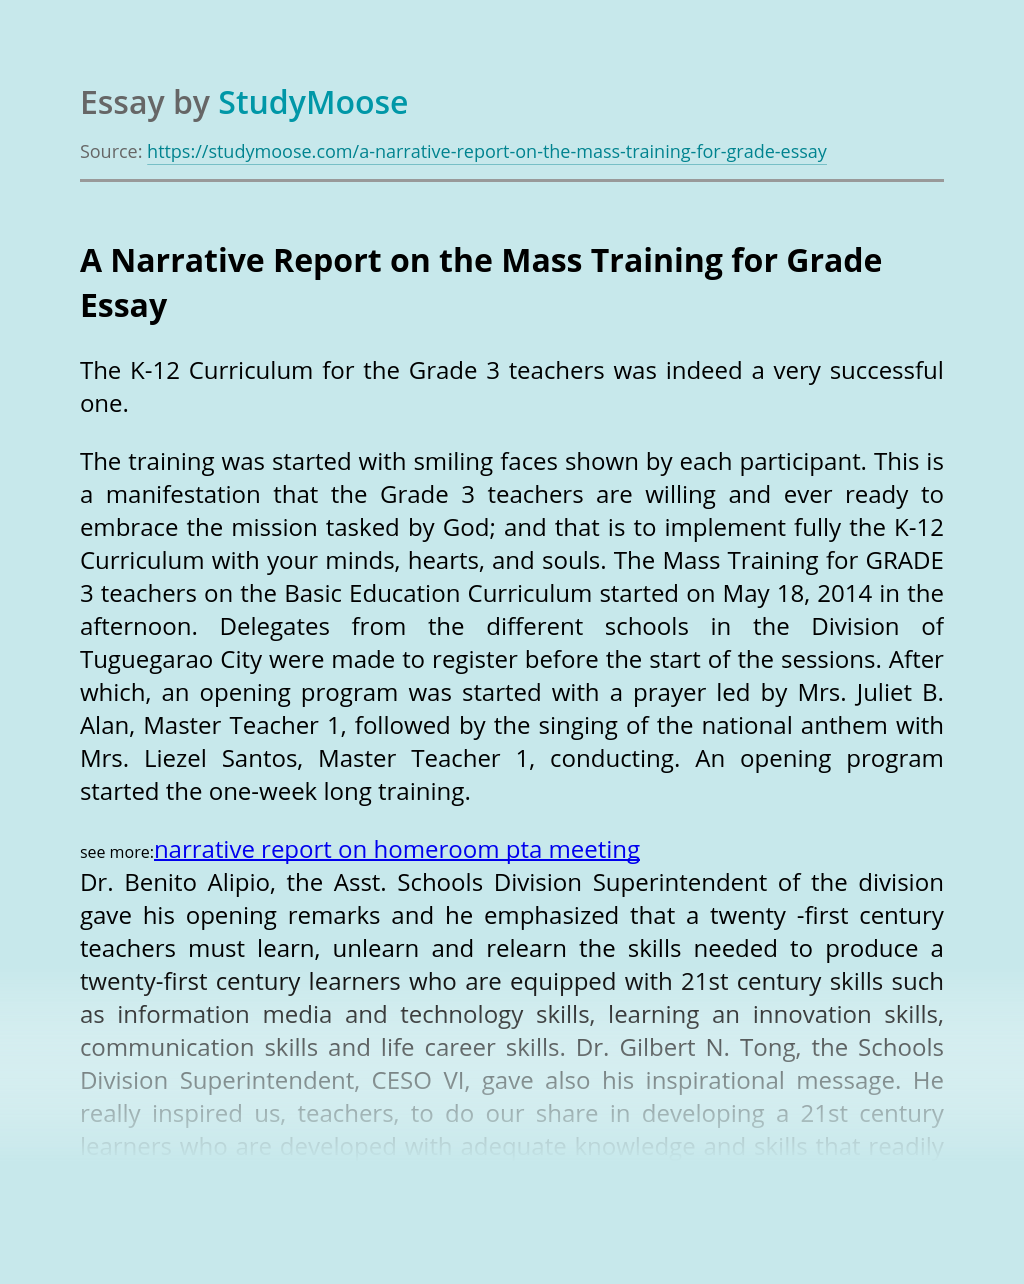 A Narrative Report on the Mass Training for Grade